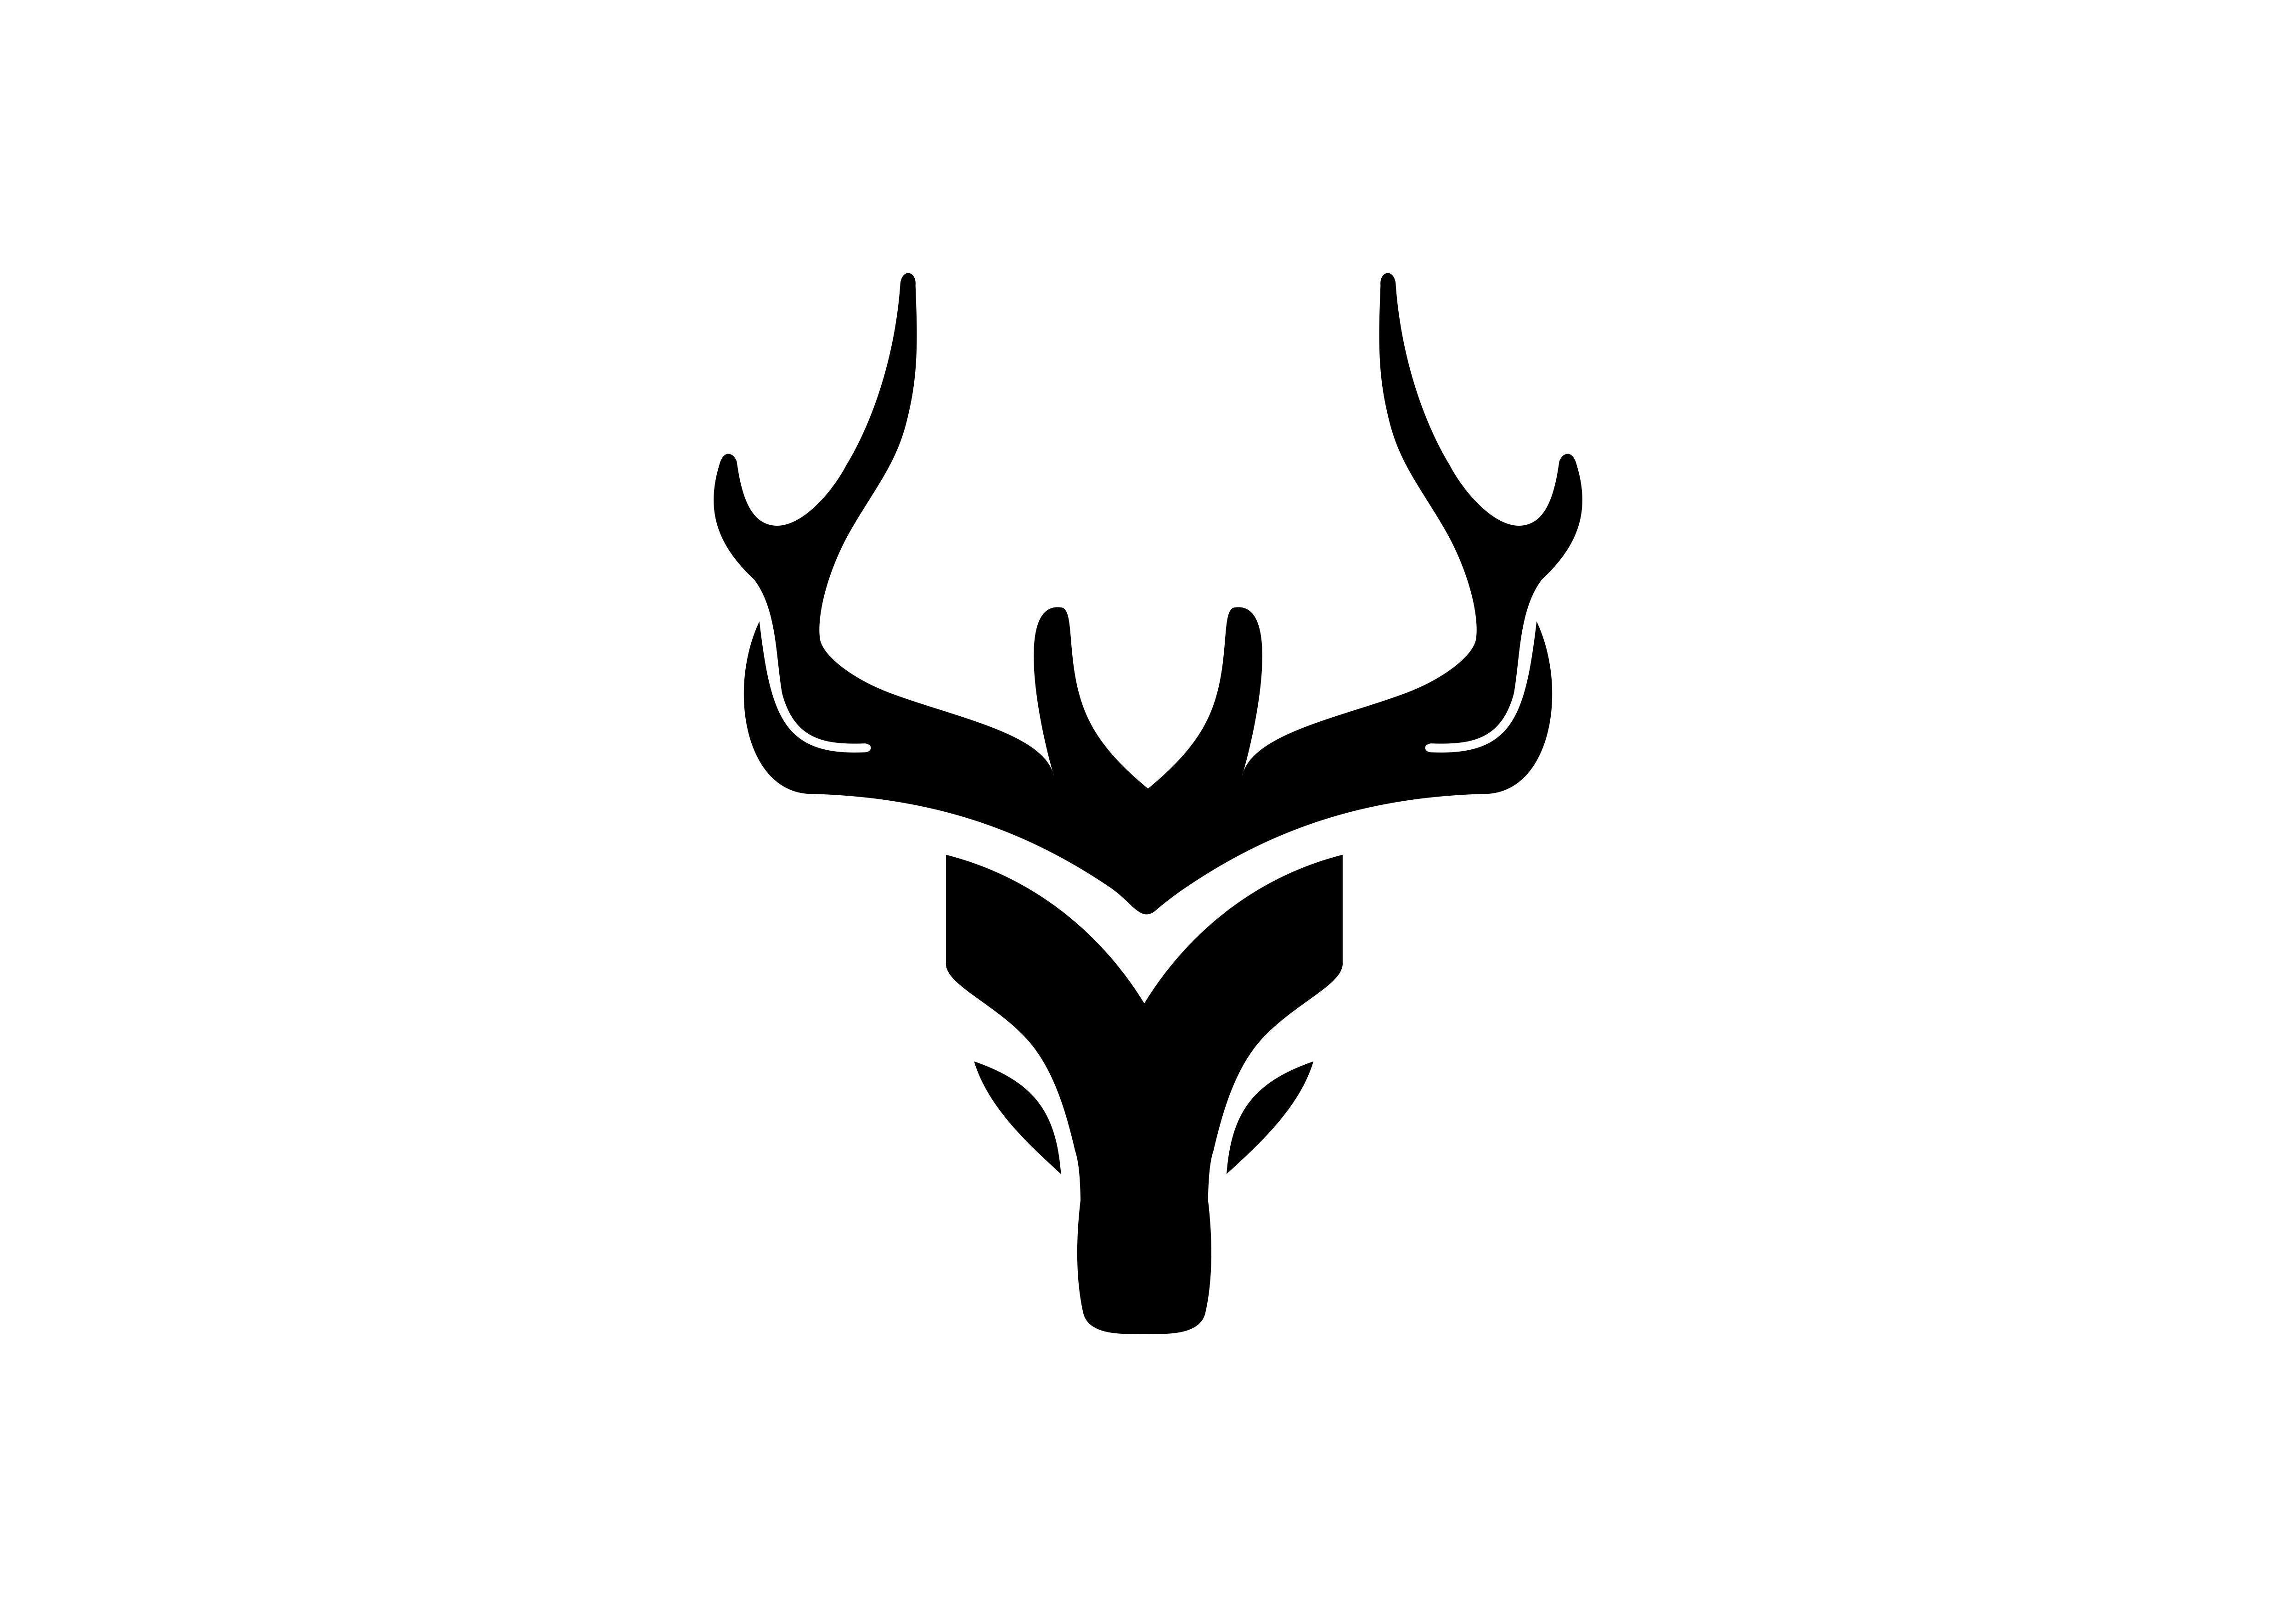 Download Free Deer Animal Logo Graphic By Deemka Studio Creative Fabrica for Cricut Explore, Silhouette and other cutting machines.